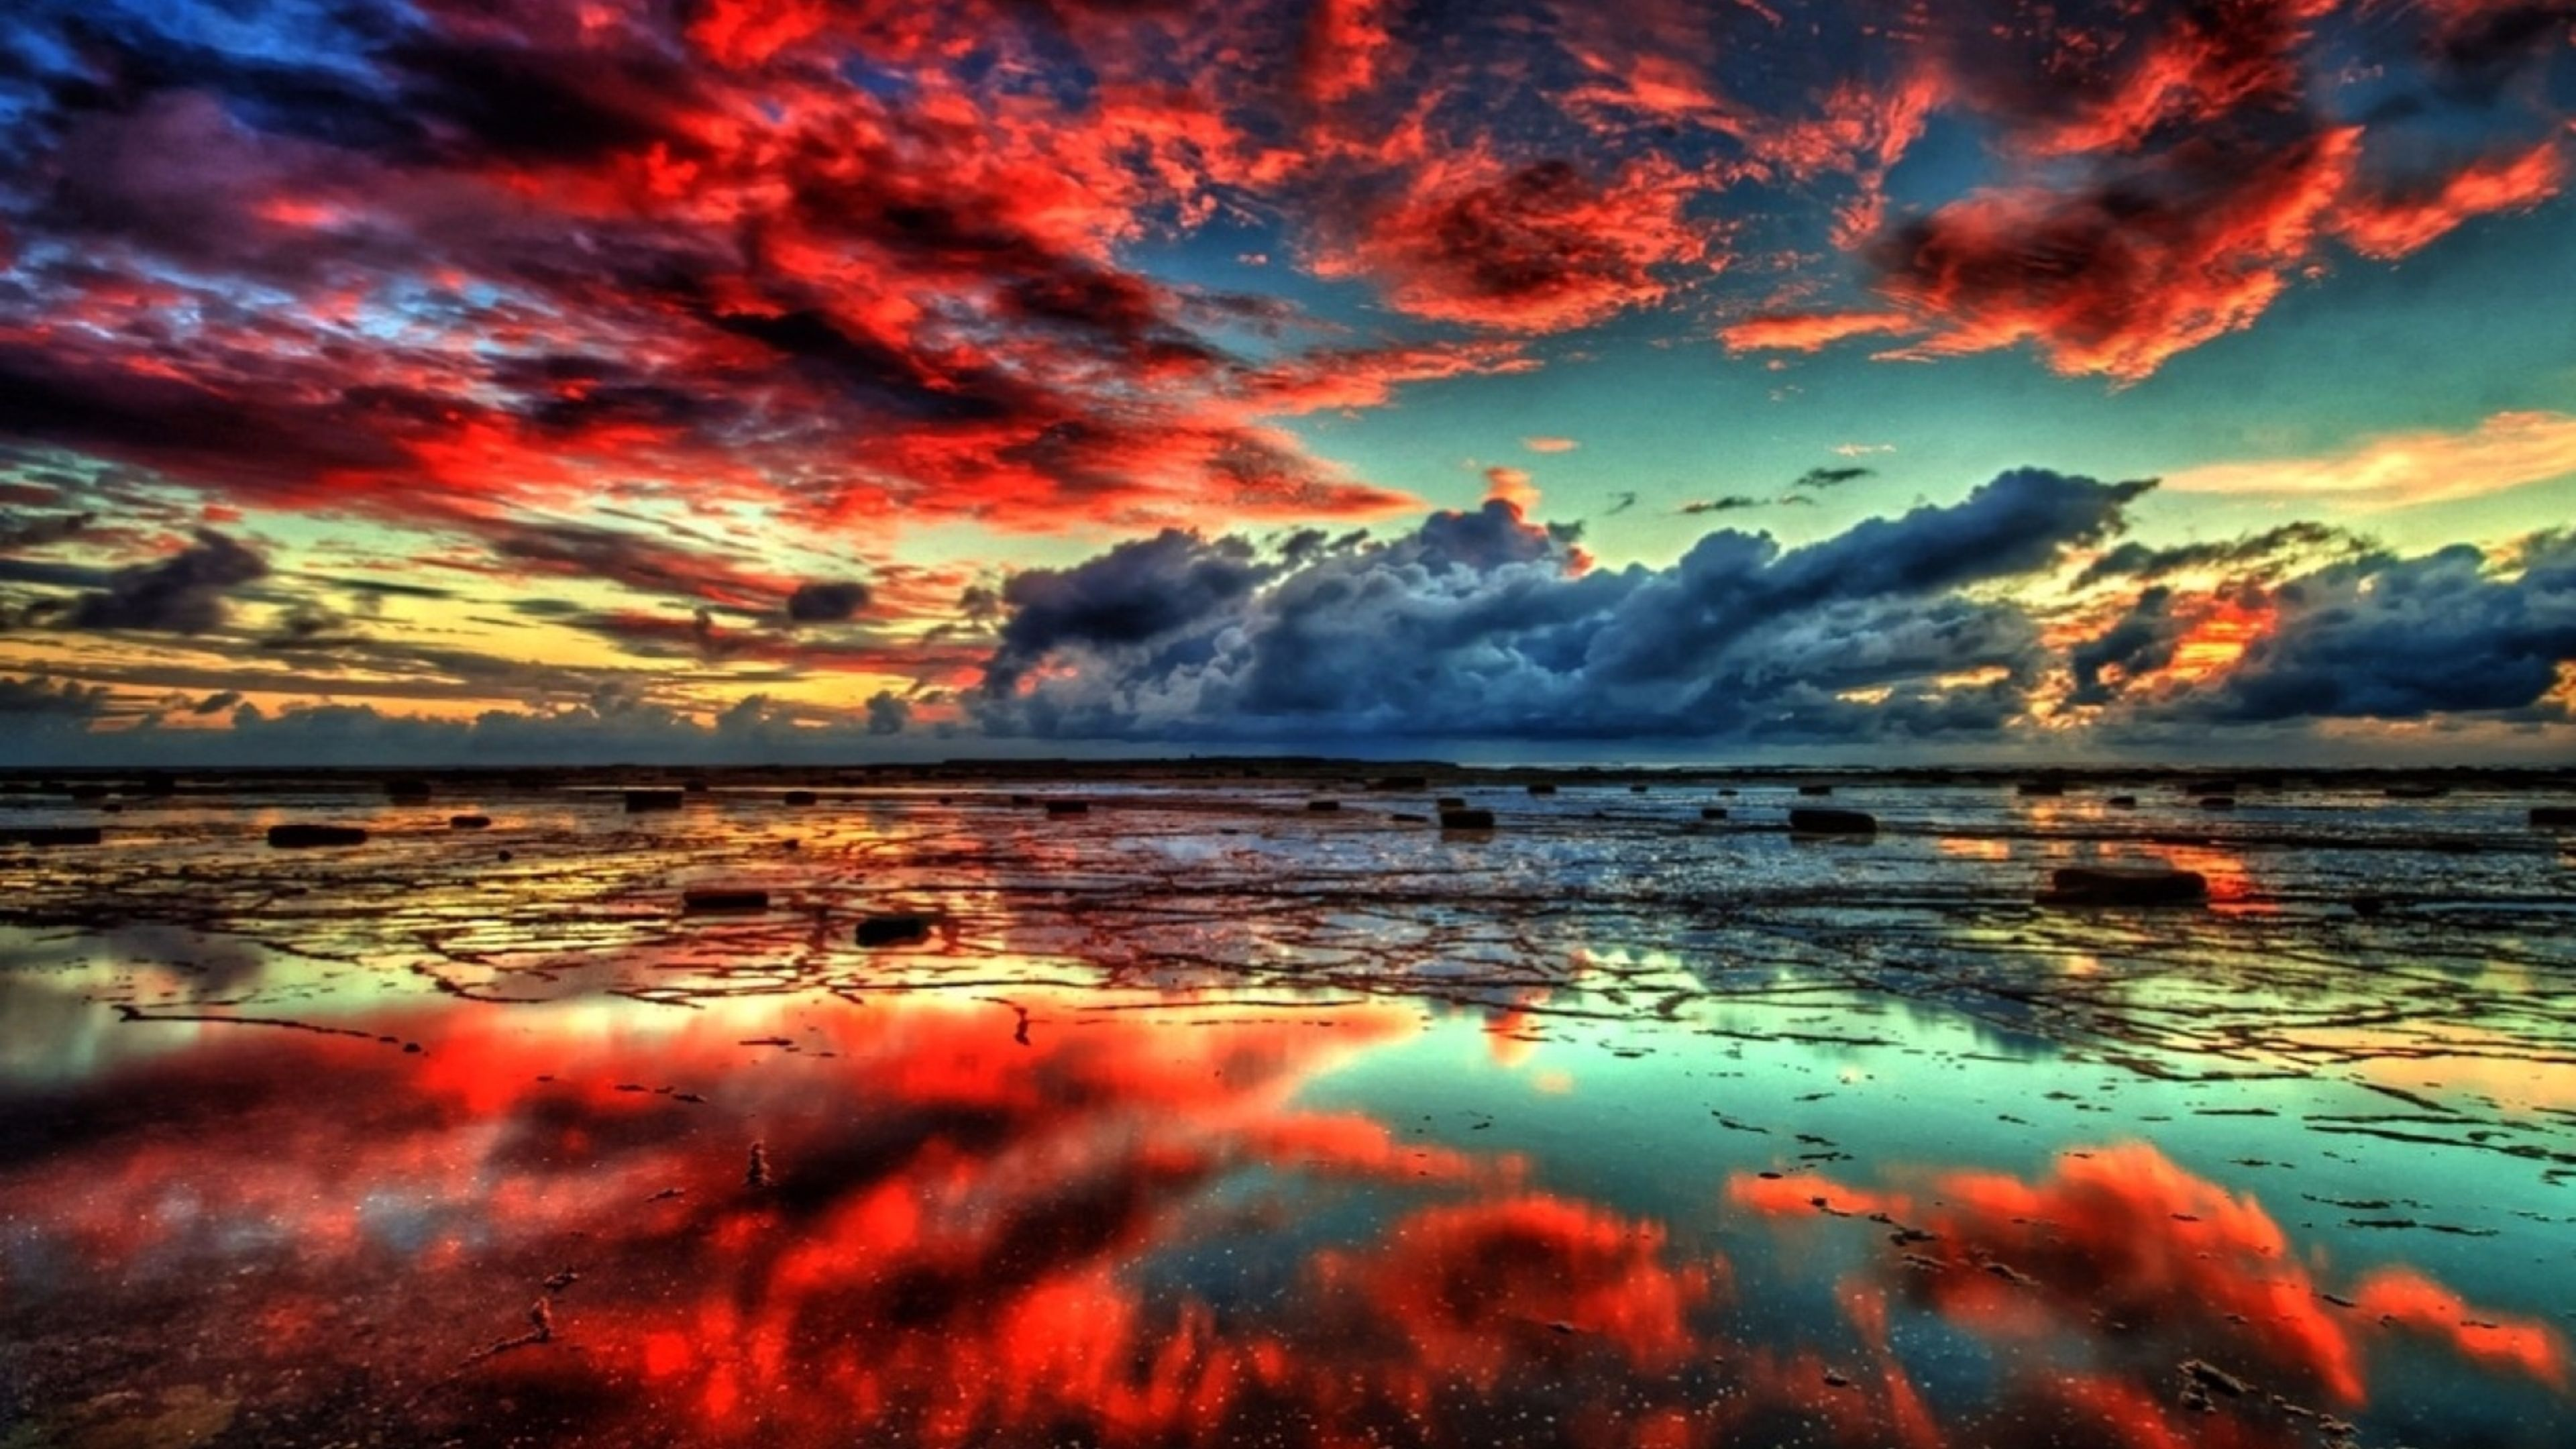 Red Clouds Nature S wallpaper